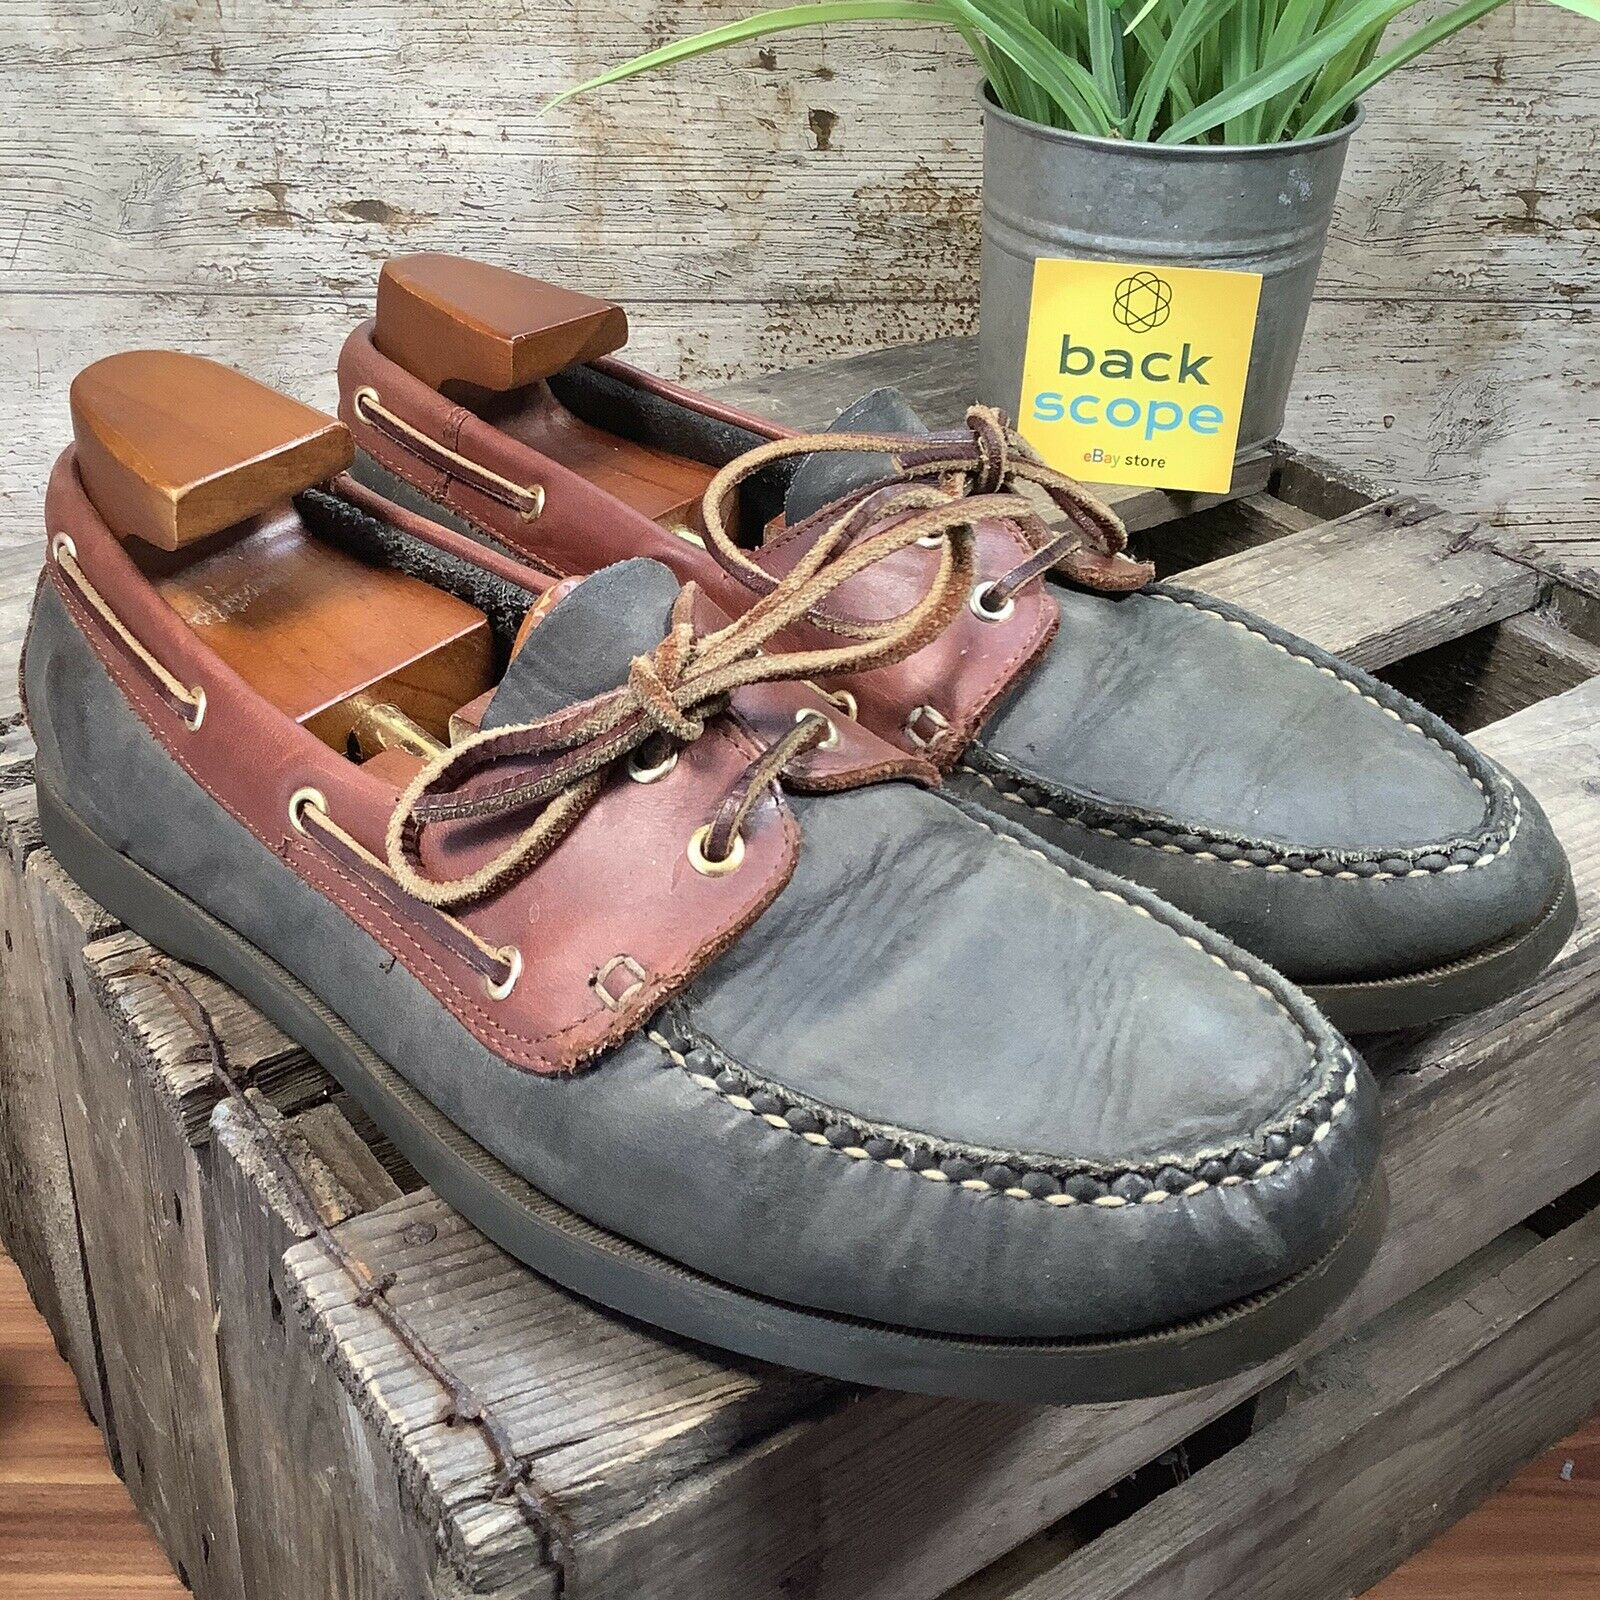 UK10 Clarks Boat Deck Moccasin Shoes - High Quality Leather Casual Comfort -EU44